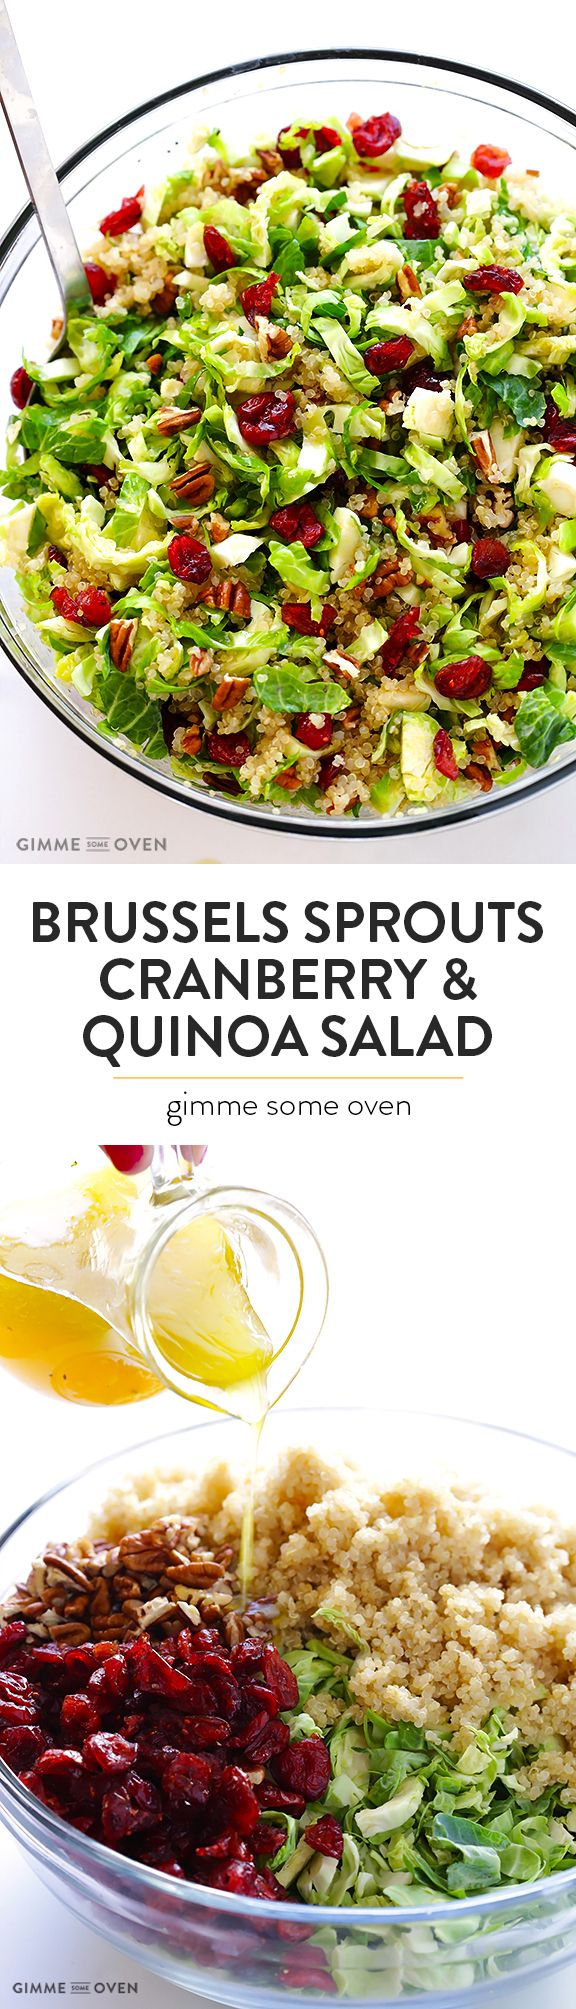 Best 25+ Healthy Quinoa Recipes Ideas Only On Pinterest  Recipes With  Quinoa, Quinoa Salad Recipes And Quinoa Recipes Easy